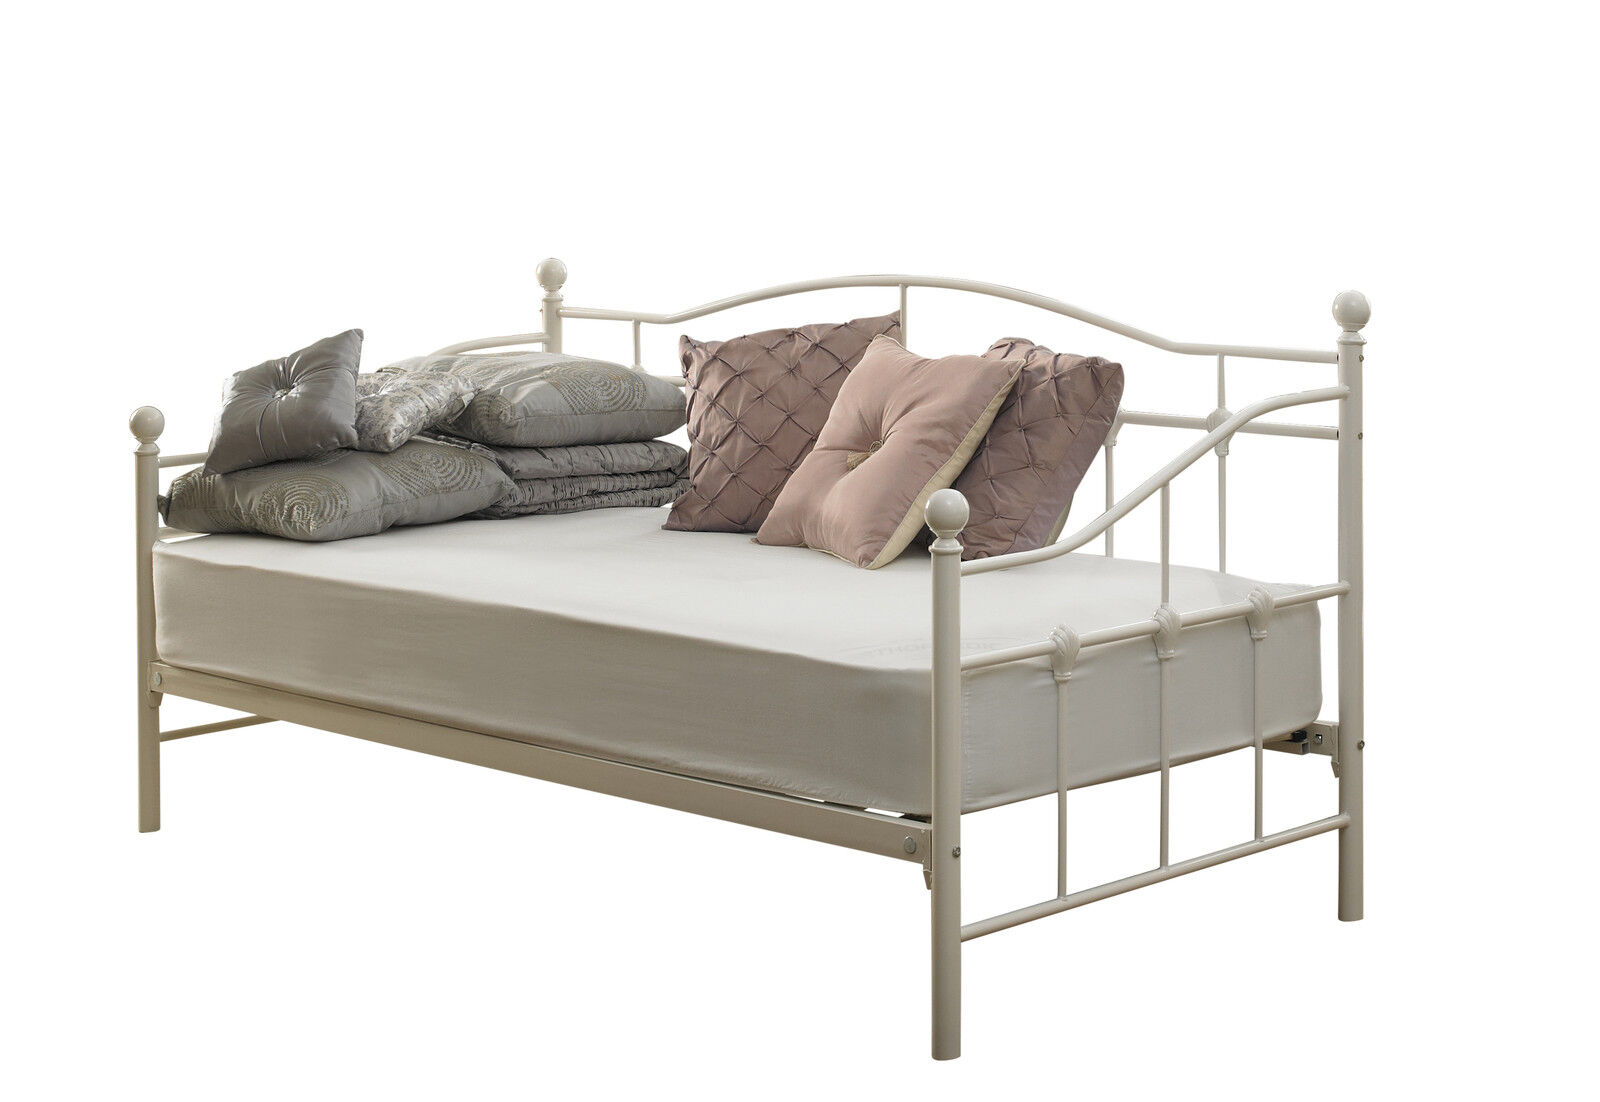 Single metal bed frames - Categories Bunk Beds Frame Beds